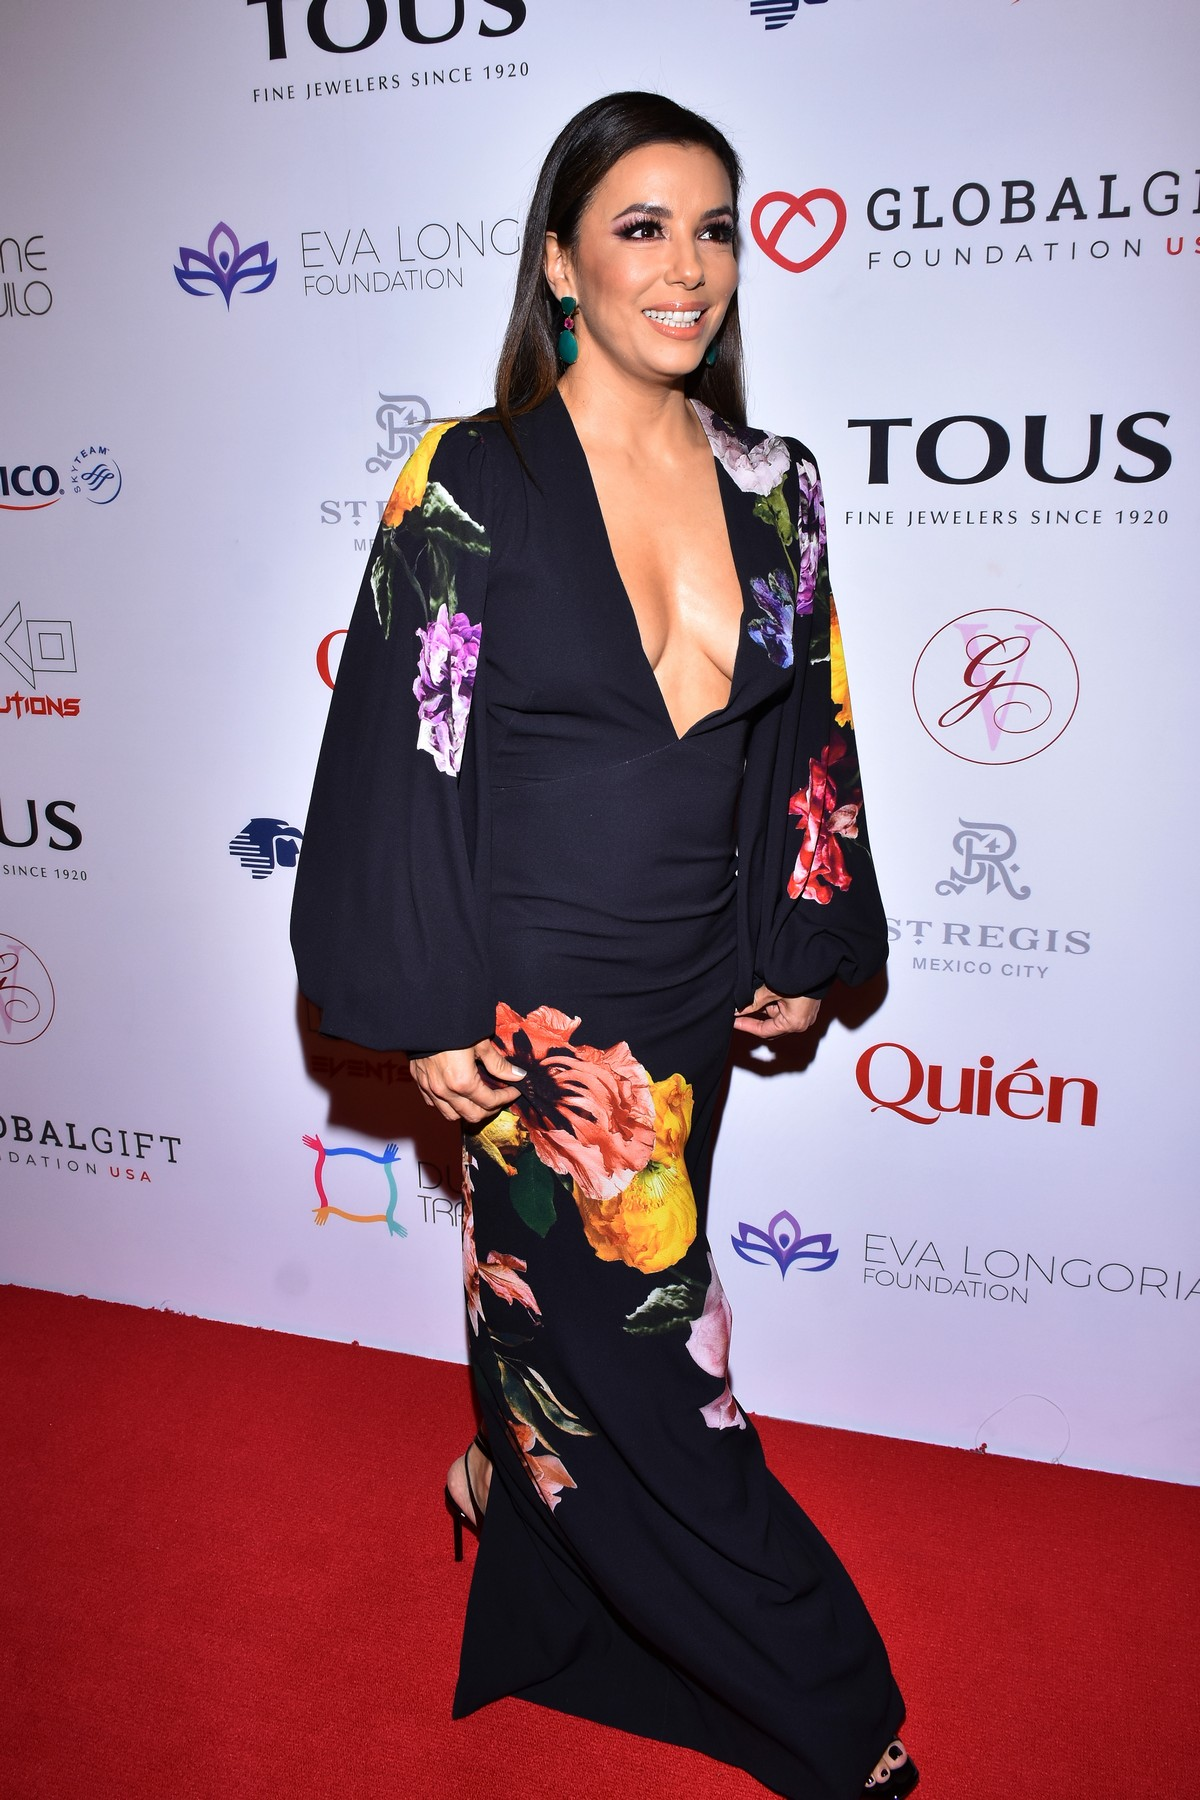 Eva Longoria attends 5th Global Gift Foundation Gala in Mexico City 2019/11/19 11